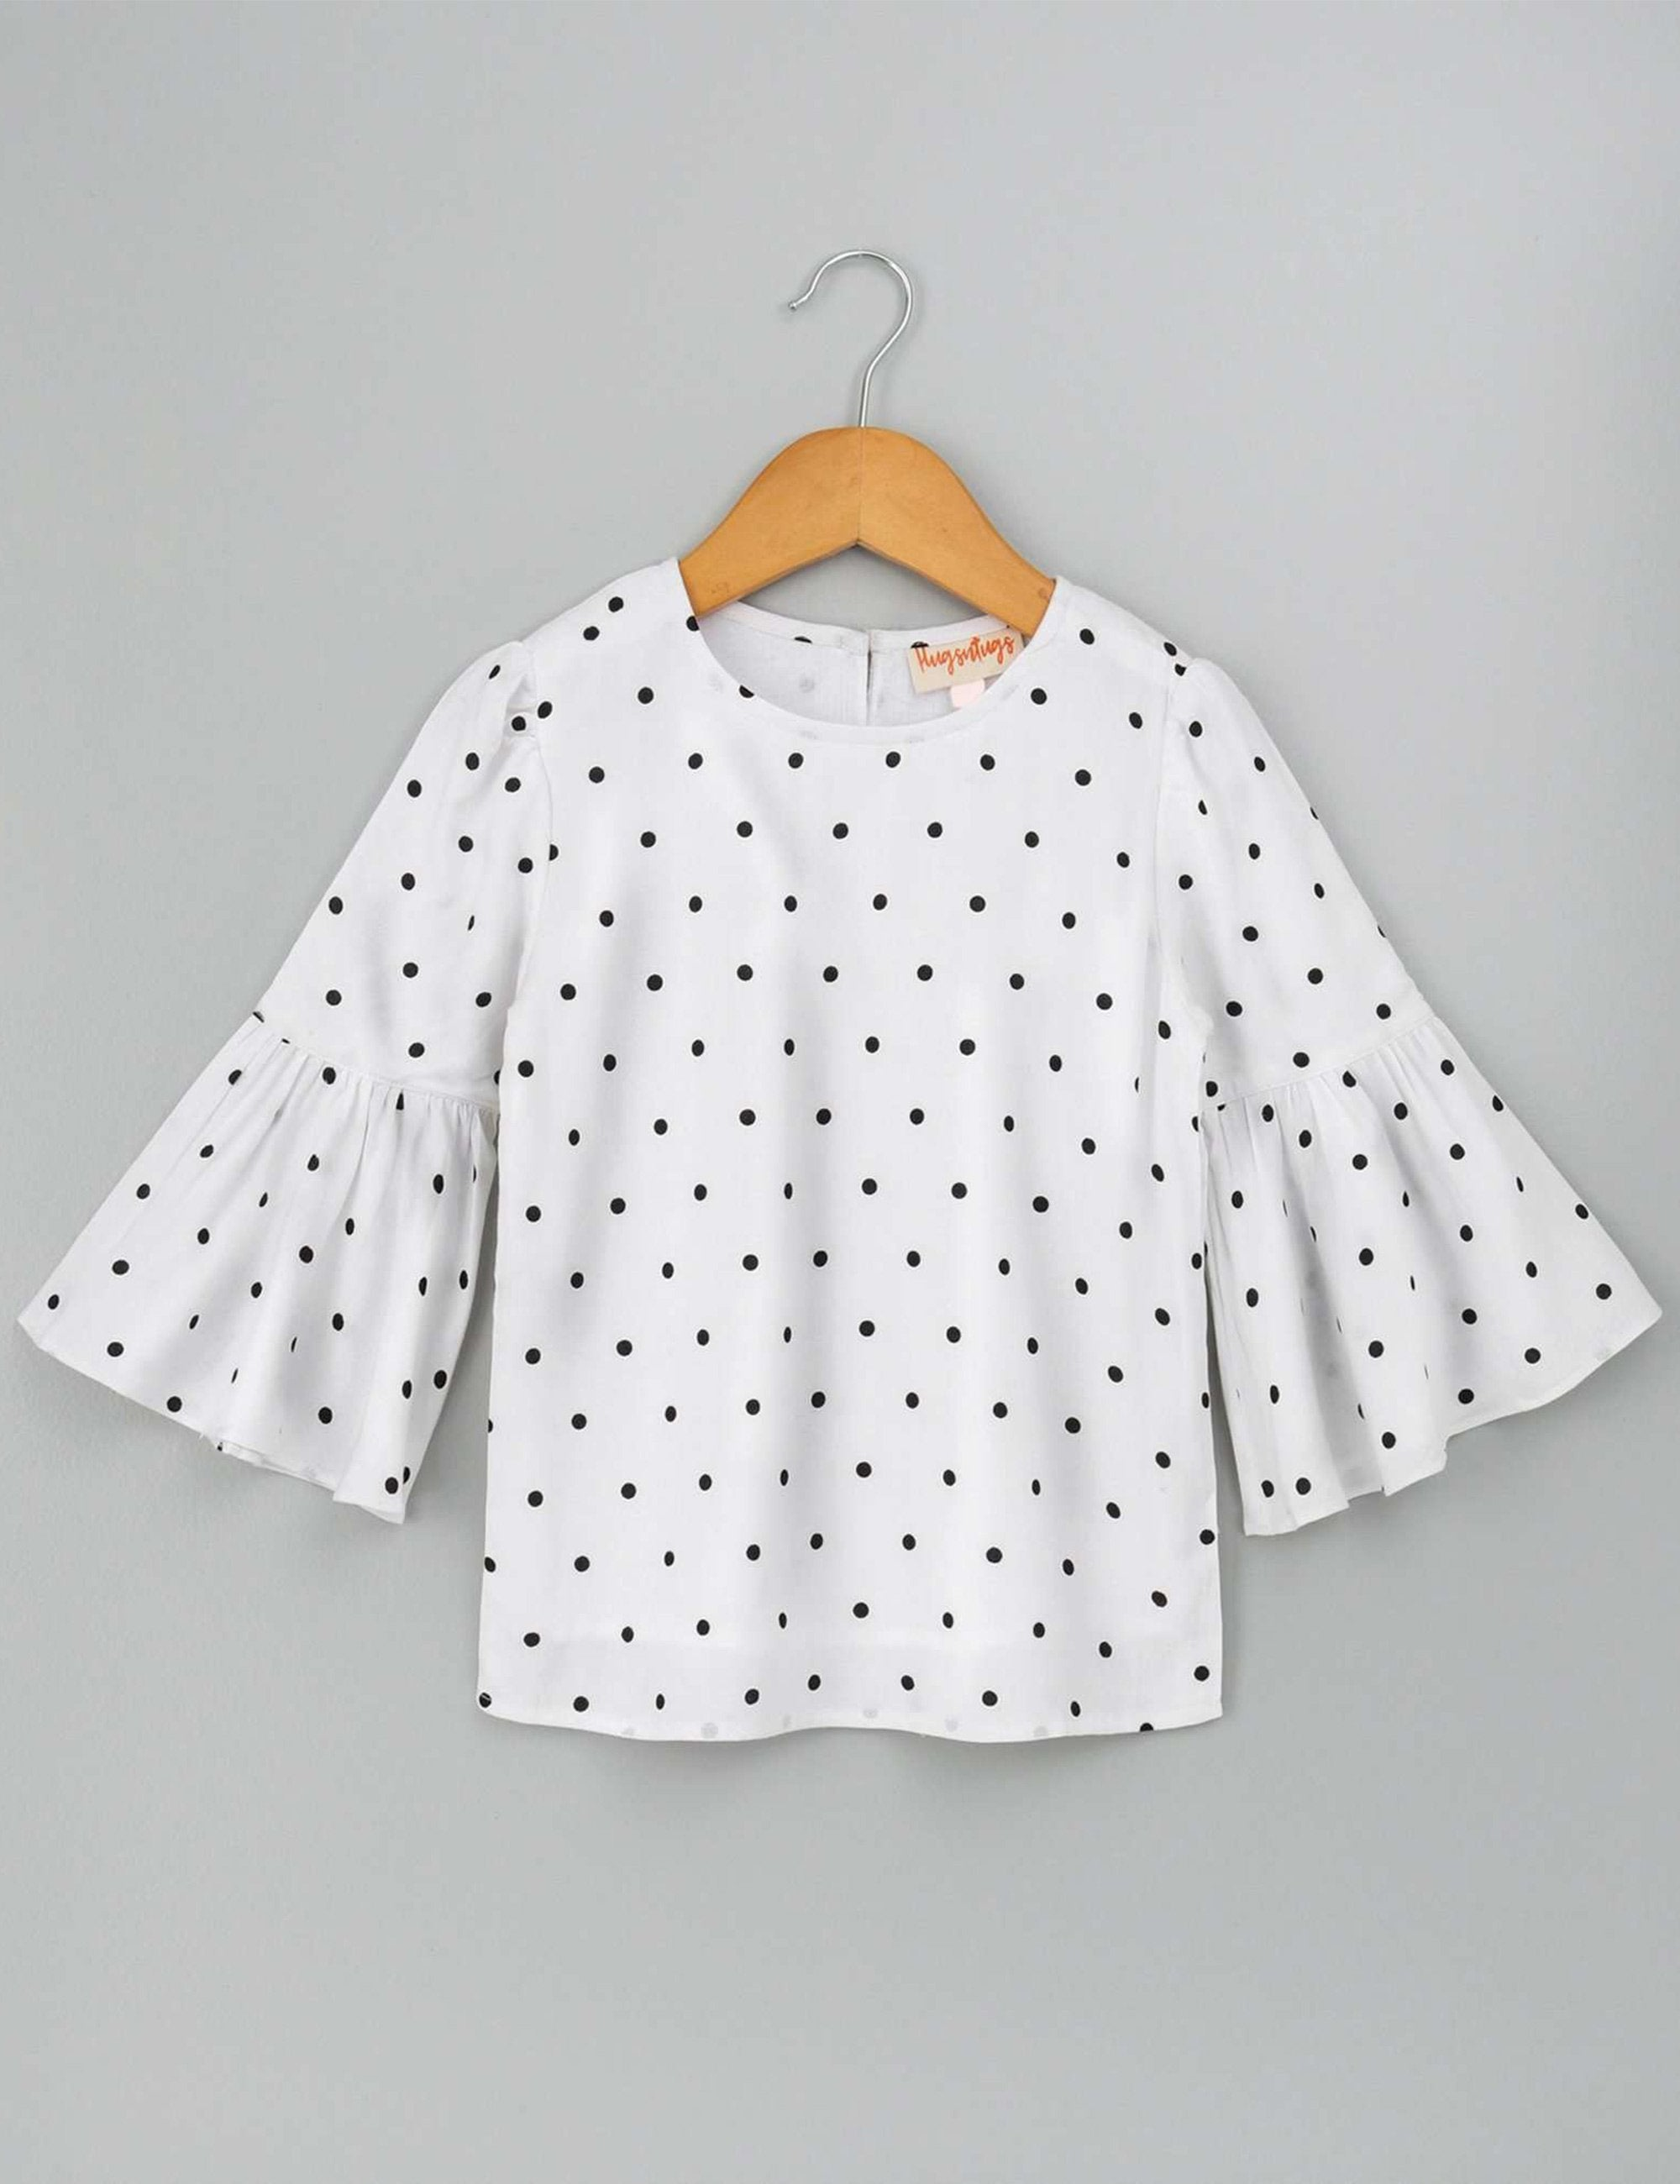 Bell Sleeves Polka Dotted Top for Girls